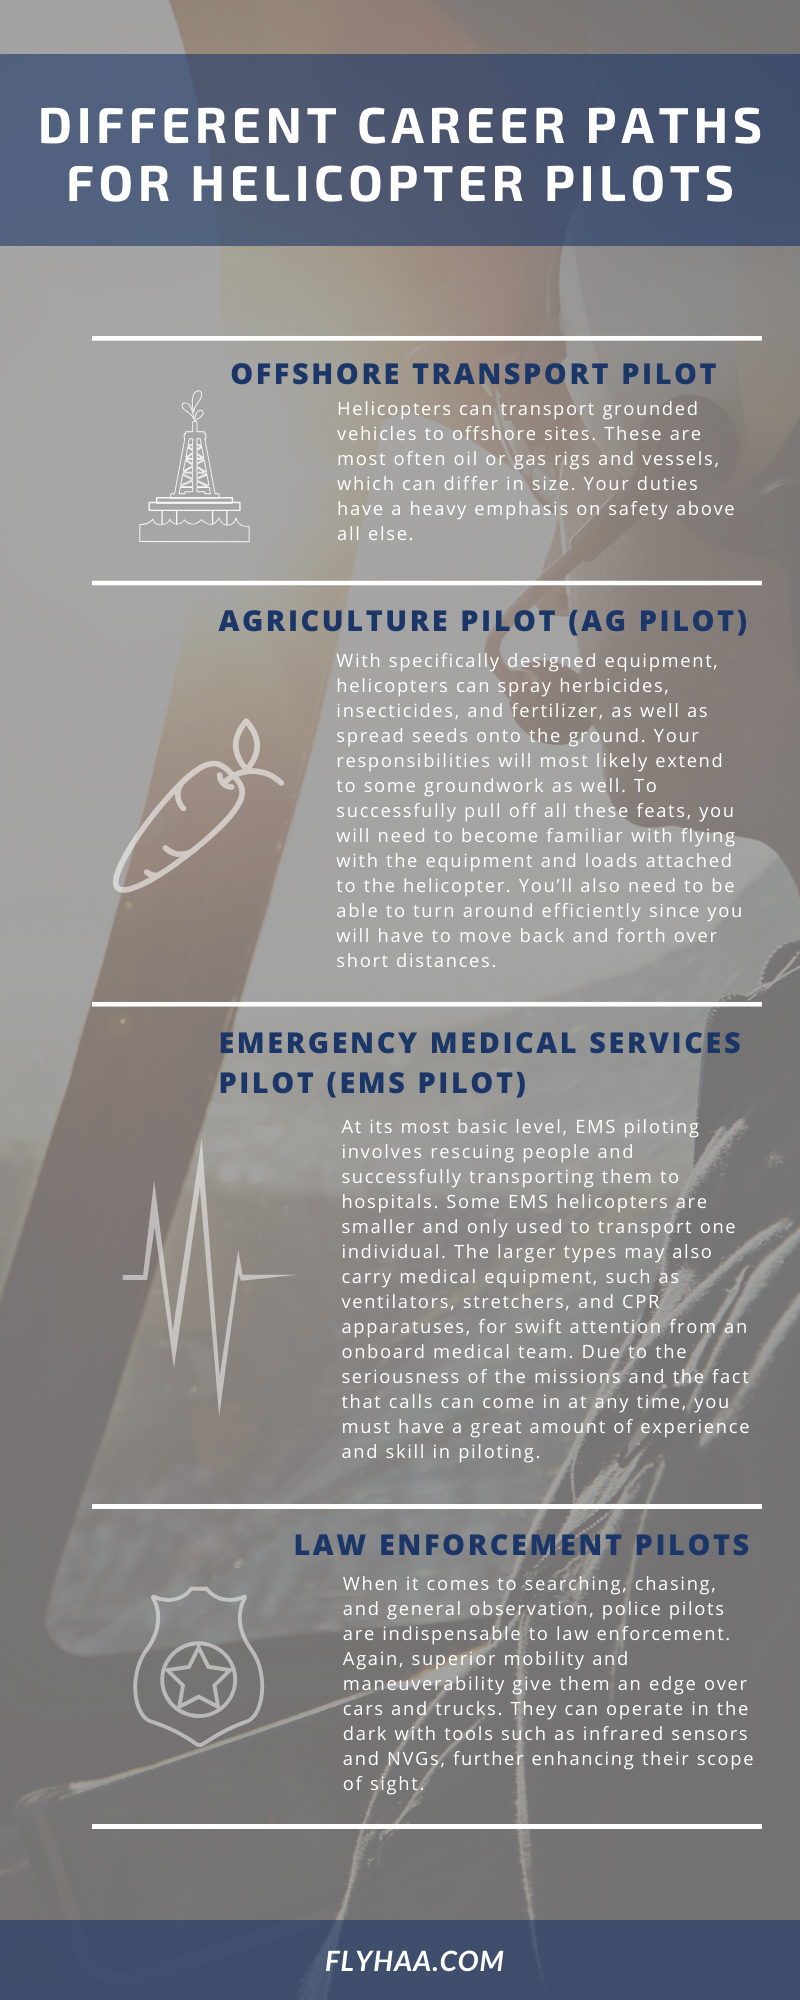 Career Paths for Helicopter Pilots